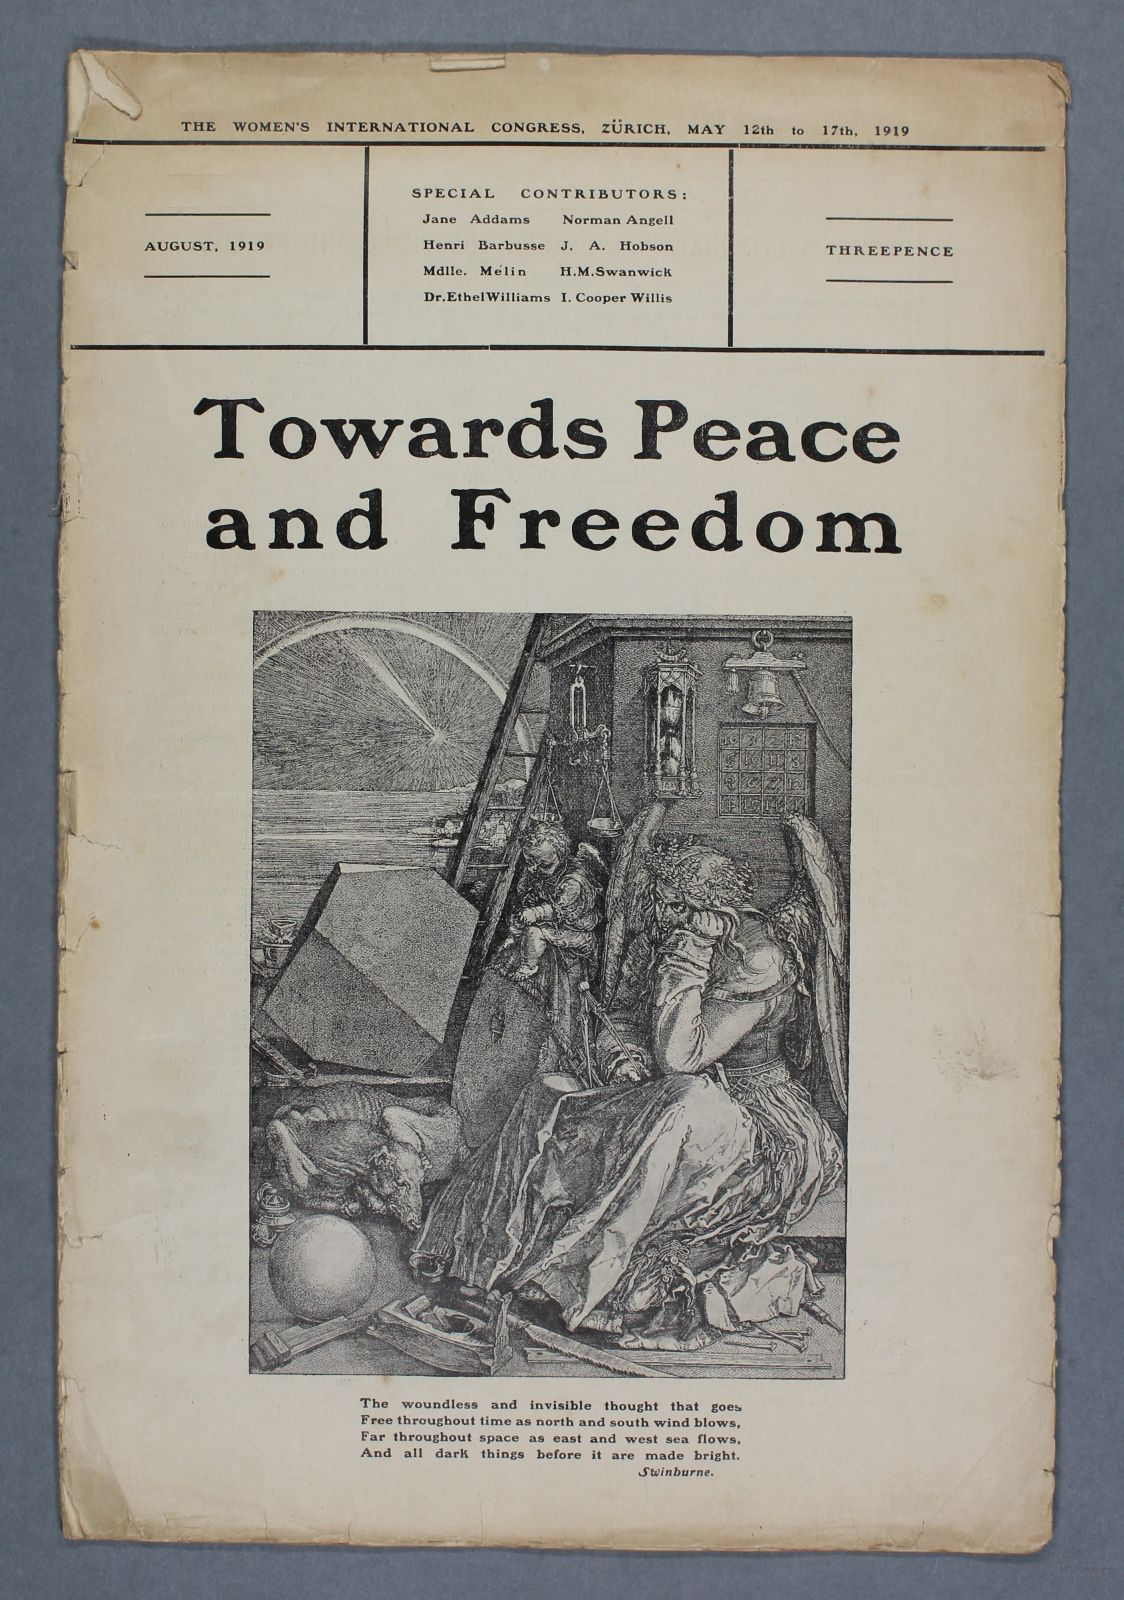 An old booklet that is slightly browned with age. 'Towards Peace and Freedom' is written in bold lettering above a black and white illustration depicting an angel who looks fed up, surrounded by different objects.